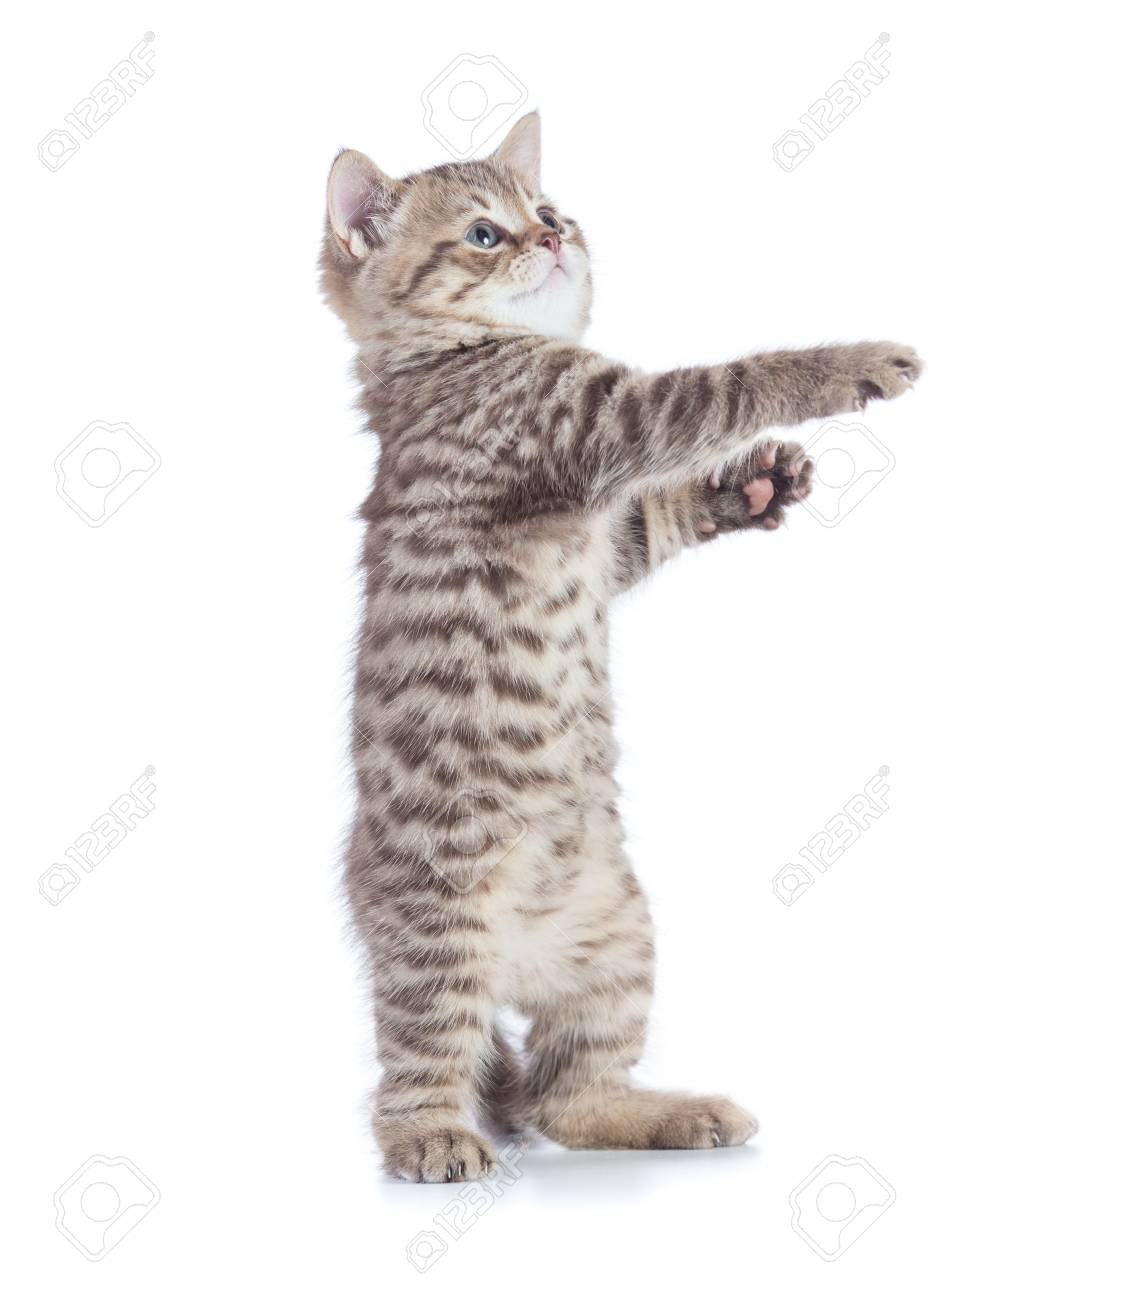 Image of: Animal Funny Cat Standing Side View Isolated On White Stock Photo 84287625 123rfcom Funny Cat Standing Side View Isolated On White Stock Photo Picture